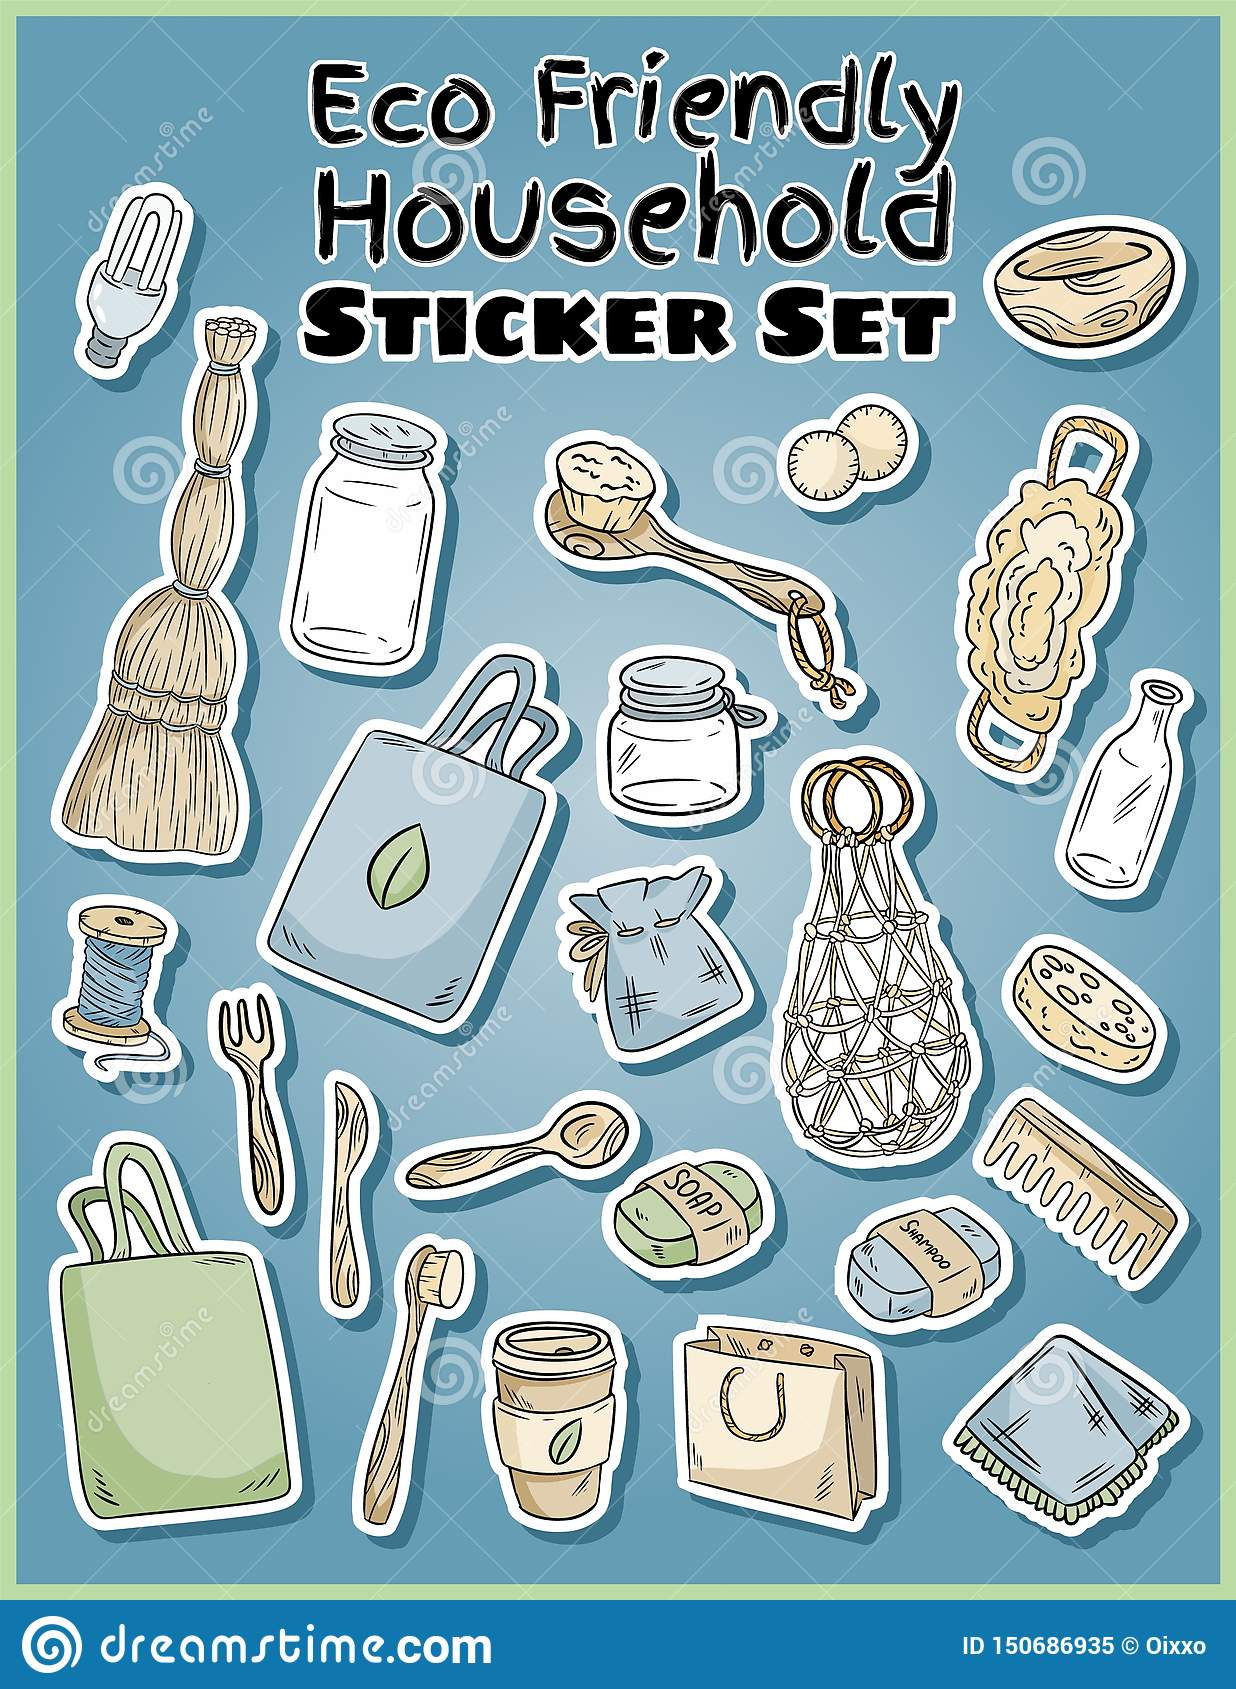 Eco friendly household stickers set. Ecological and zero-waste collection of labels. Go green living